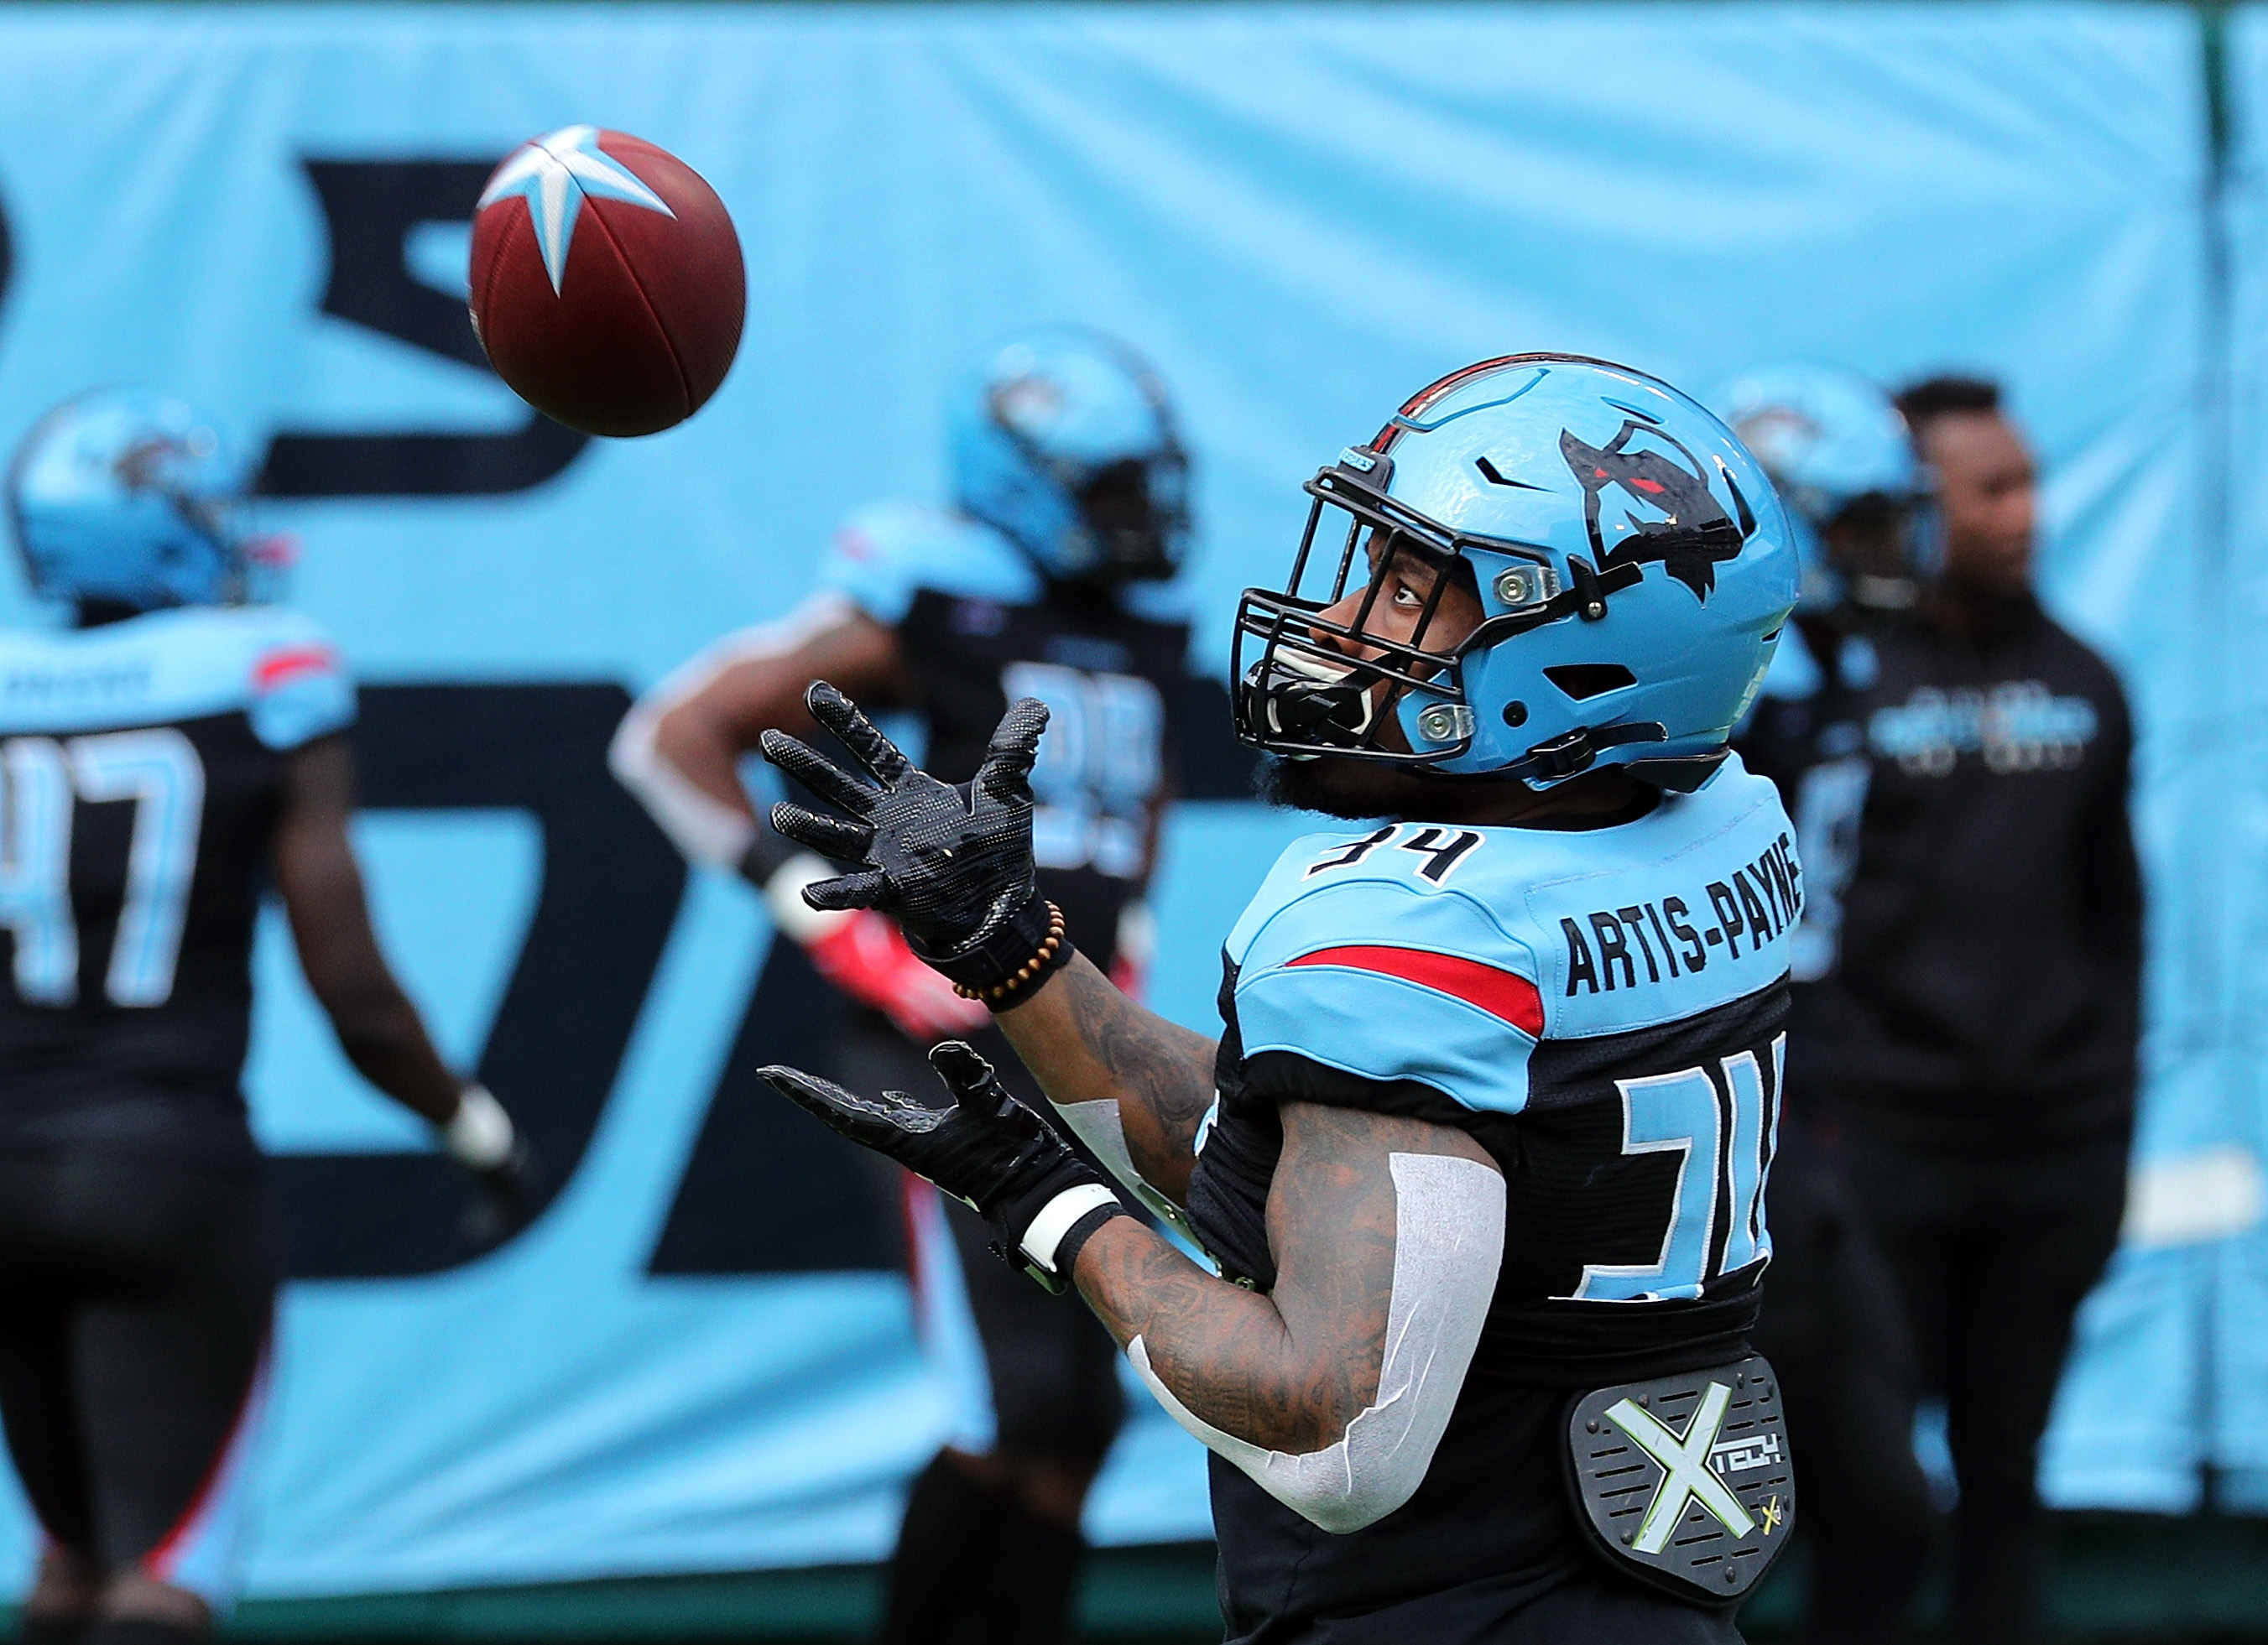 Cameron Artis-Payne #34 of the Dallas Renegades catches a pass during warm ups before an XFL football game against the New York Guardians on March 07, 2020 in Arlington, Texas.